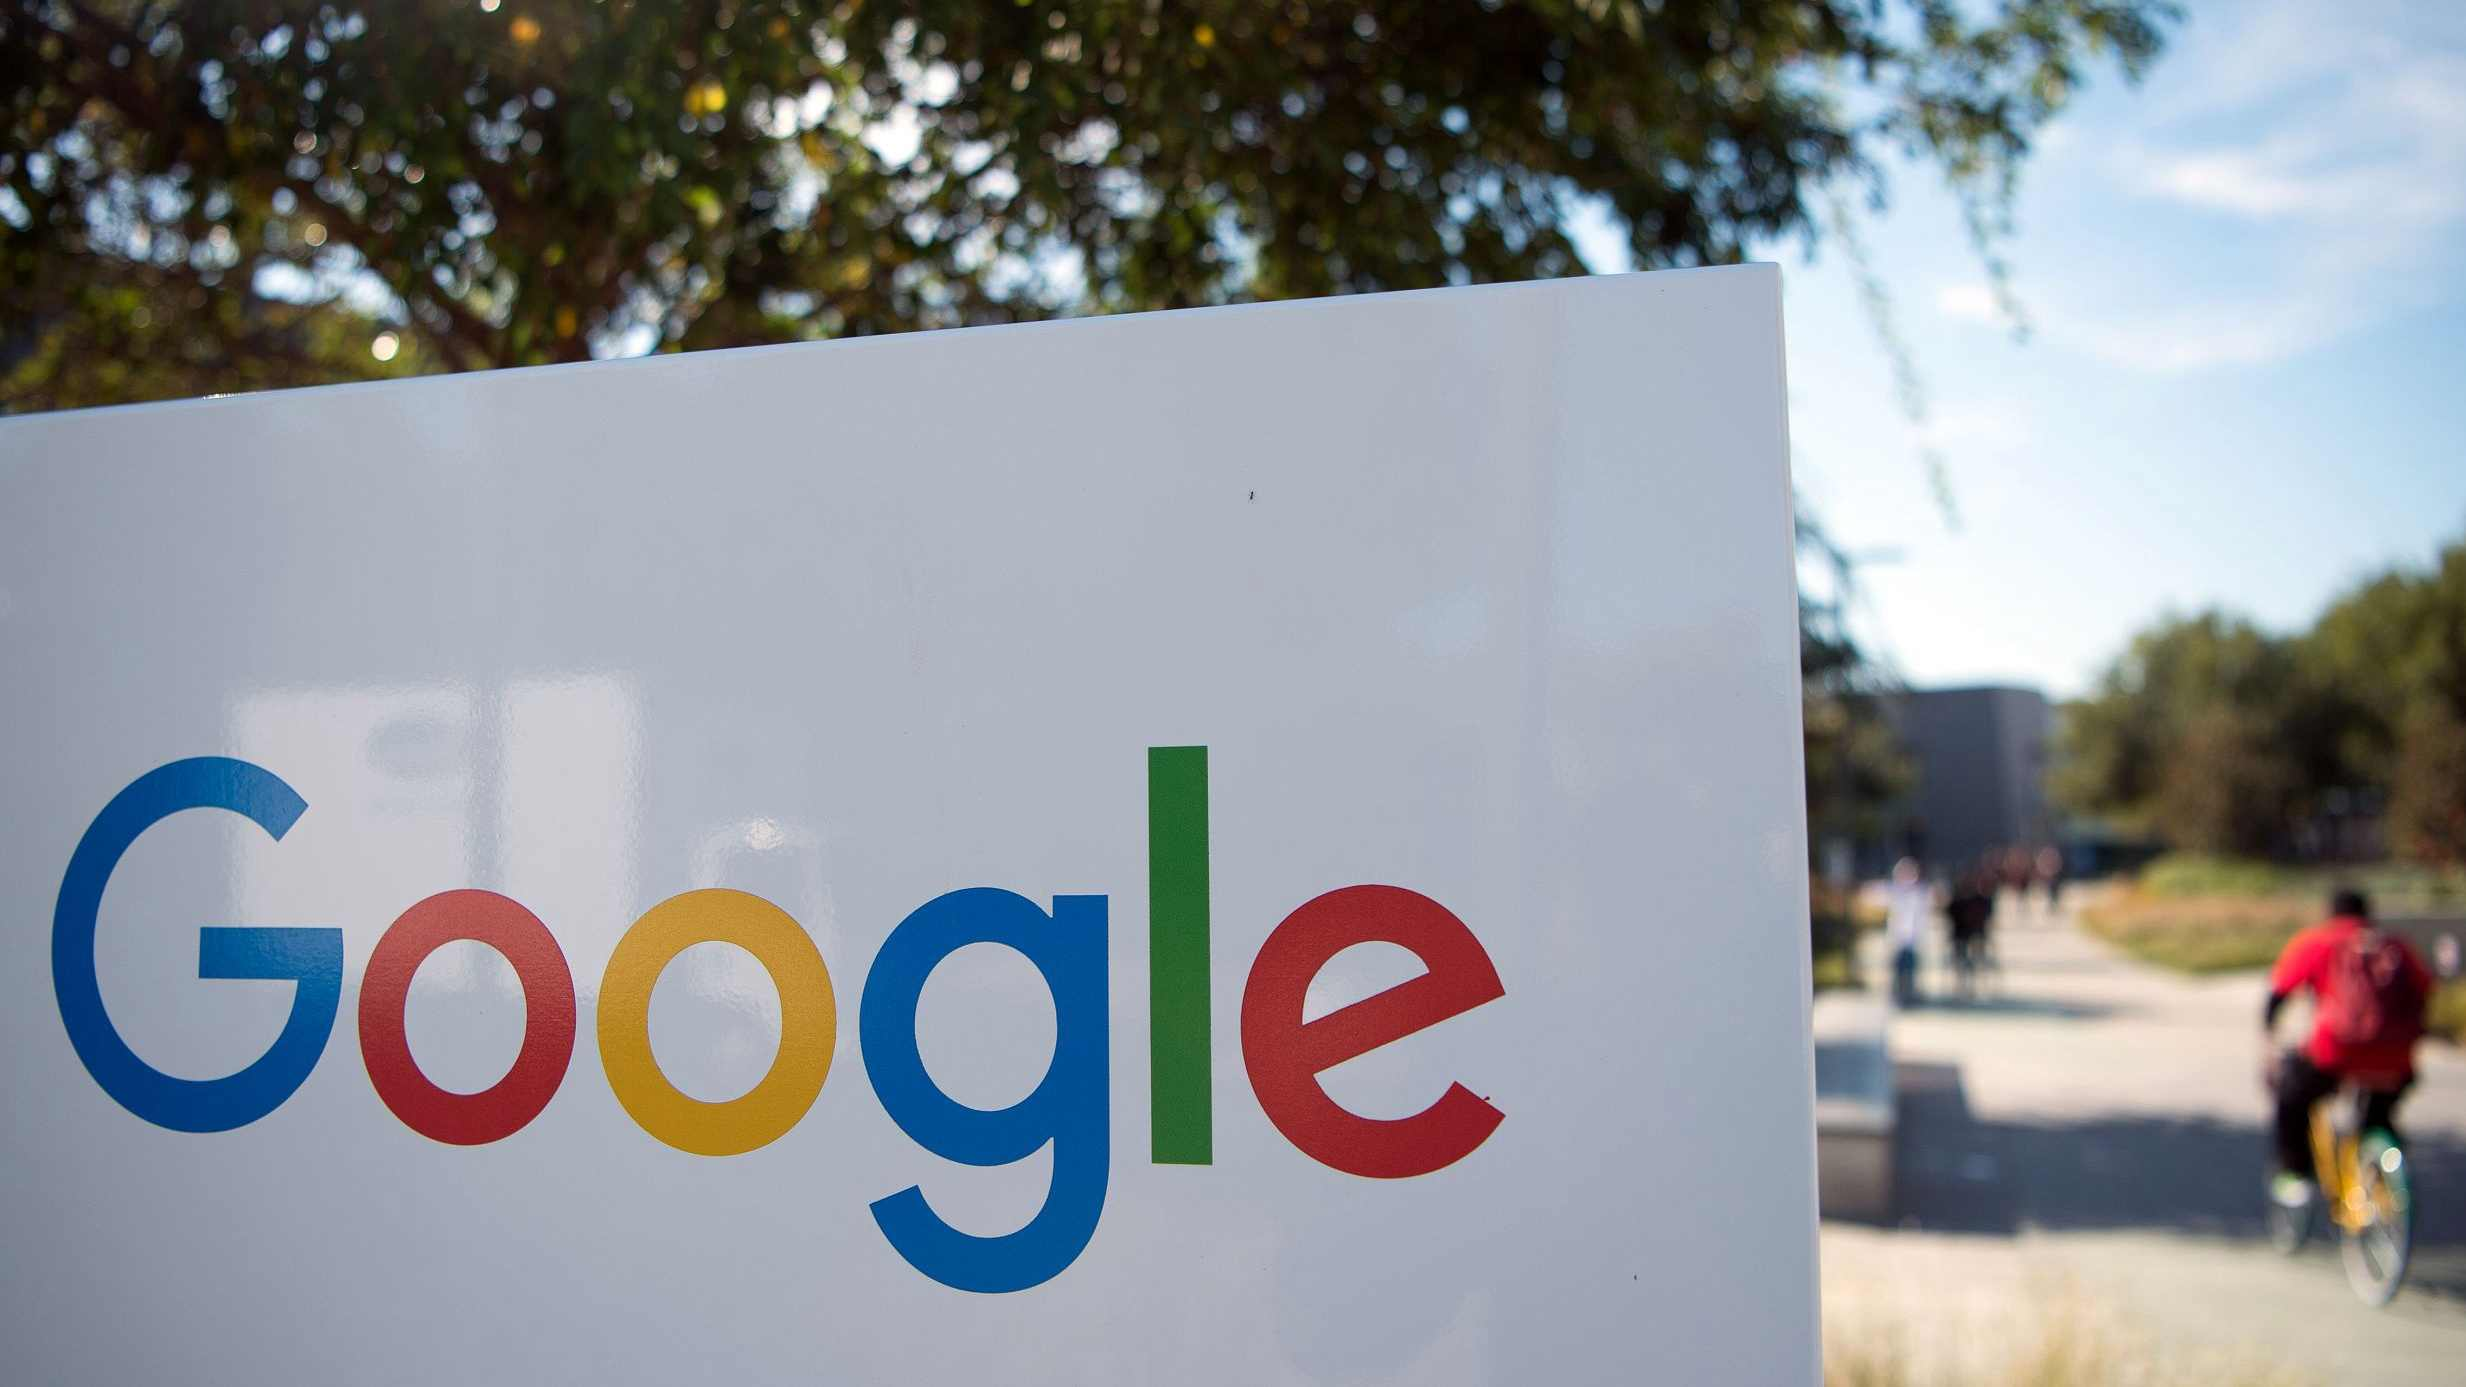 Google to raise ad fees to cover Austrian tax